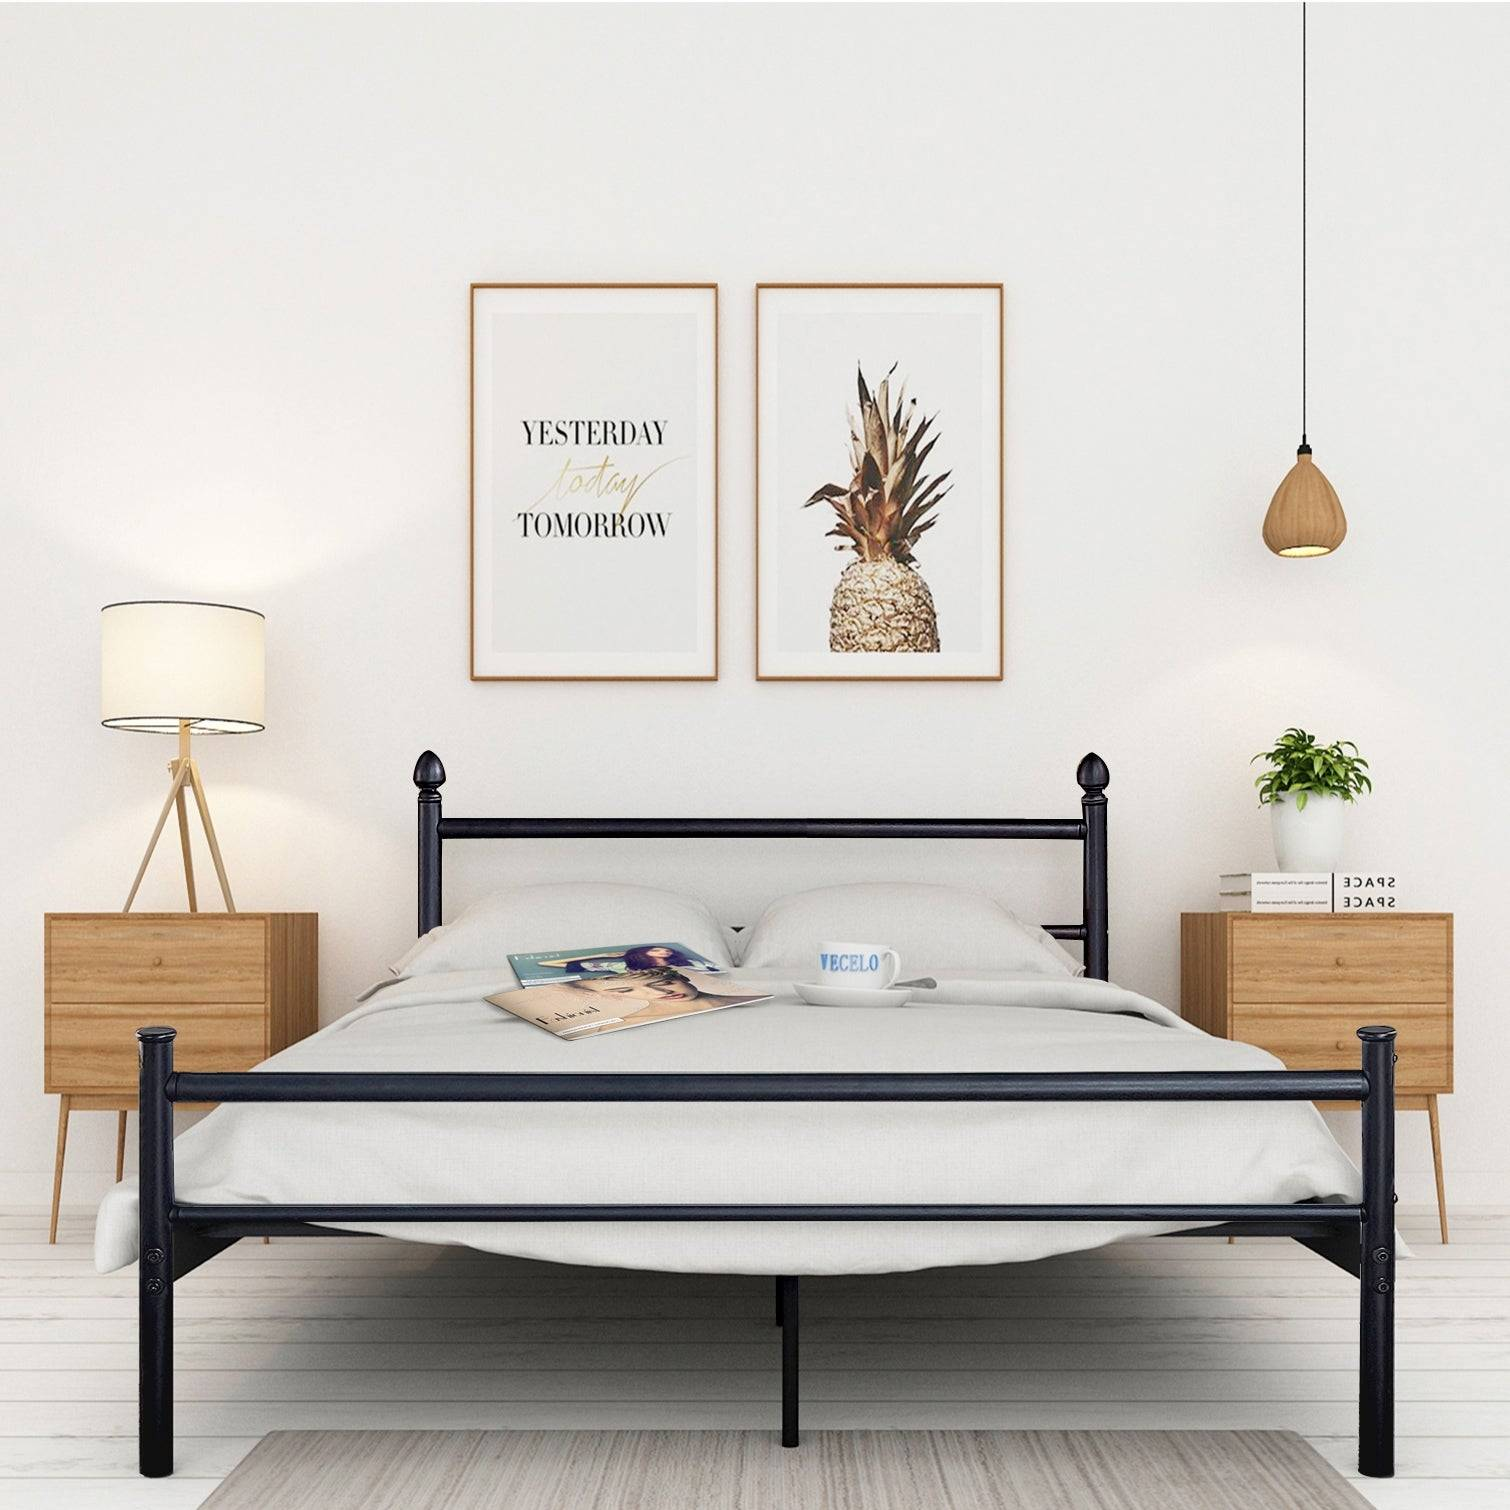 VECELO Platform Bed Frame Queen Full Twin Size Metal Beds Box Spring Replacement with Headboard and Footboard